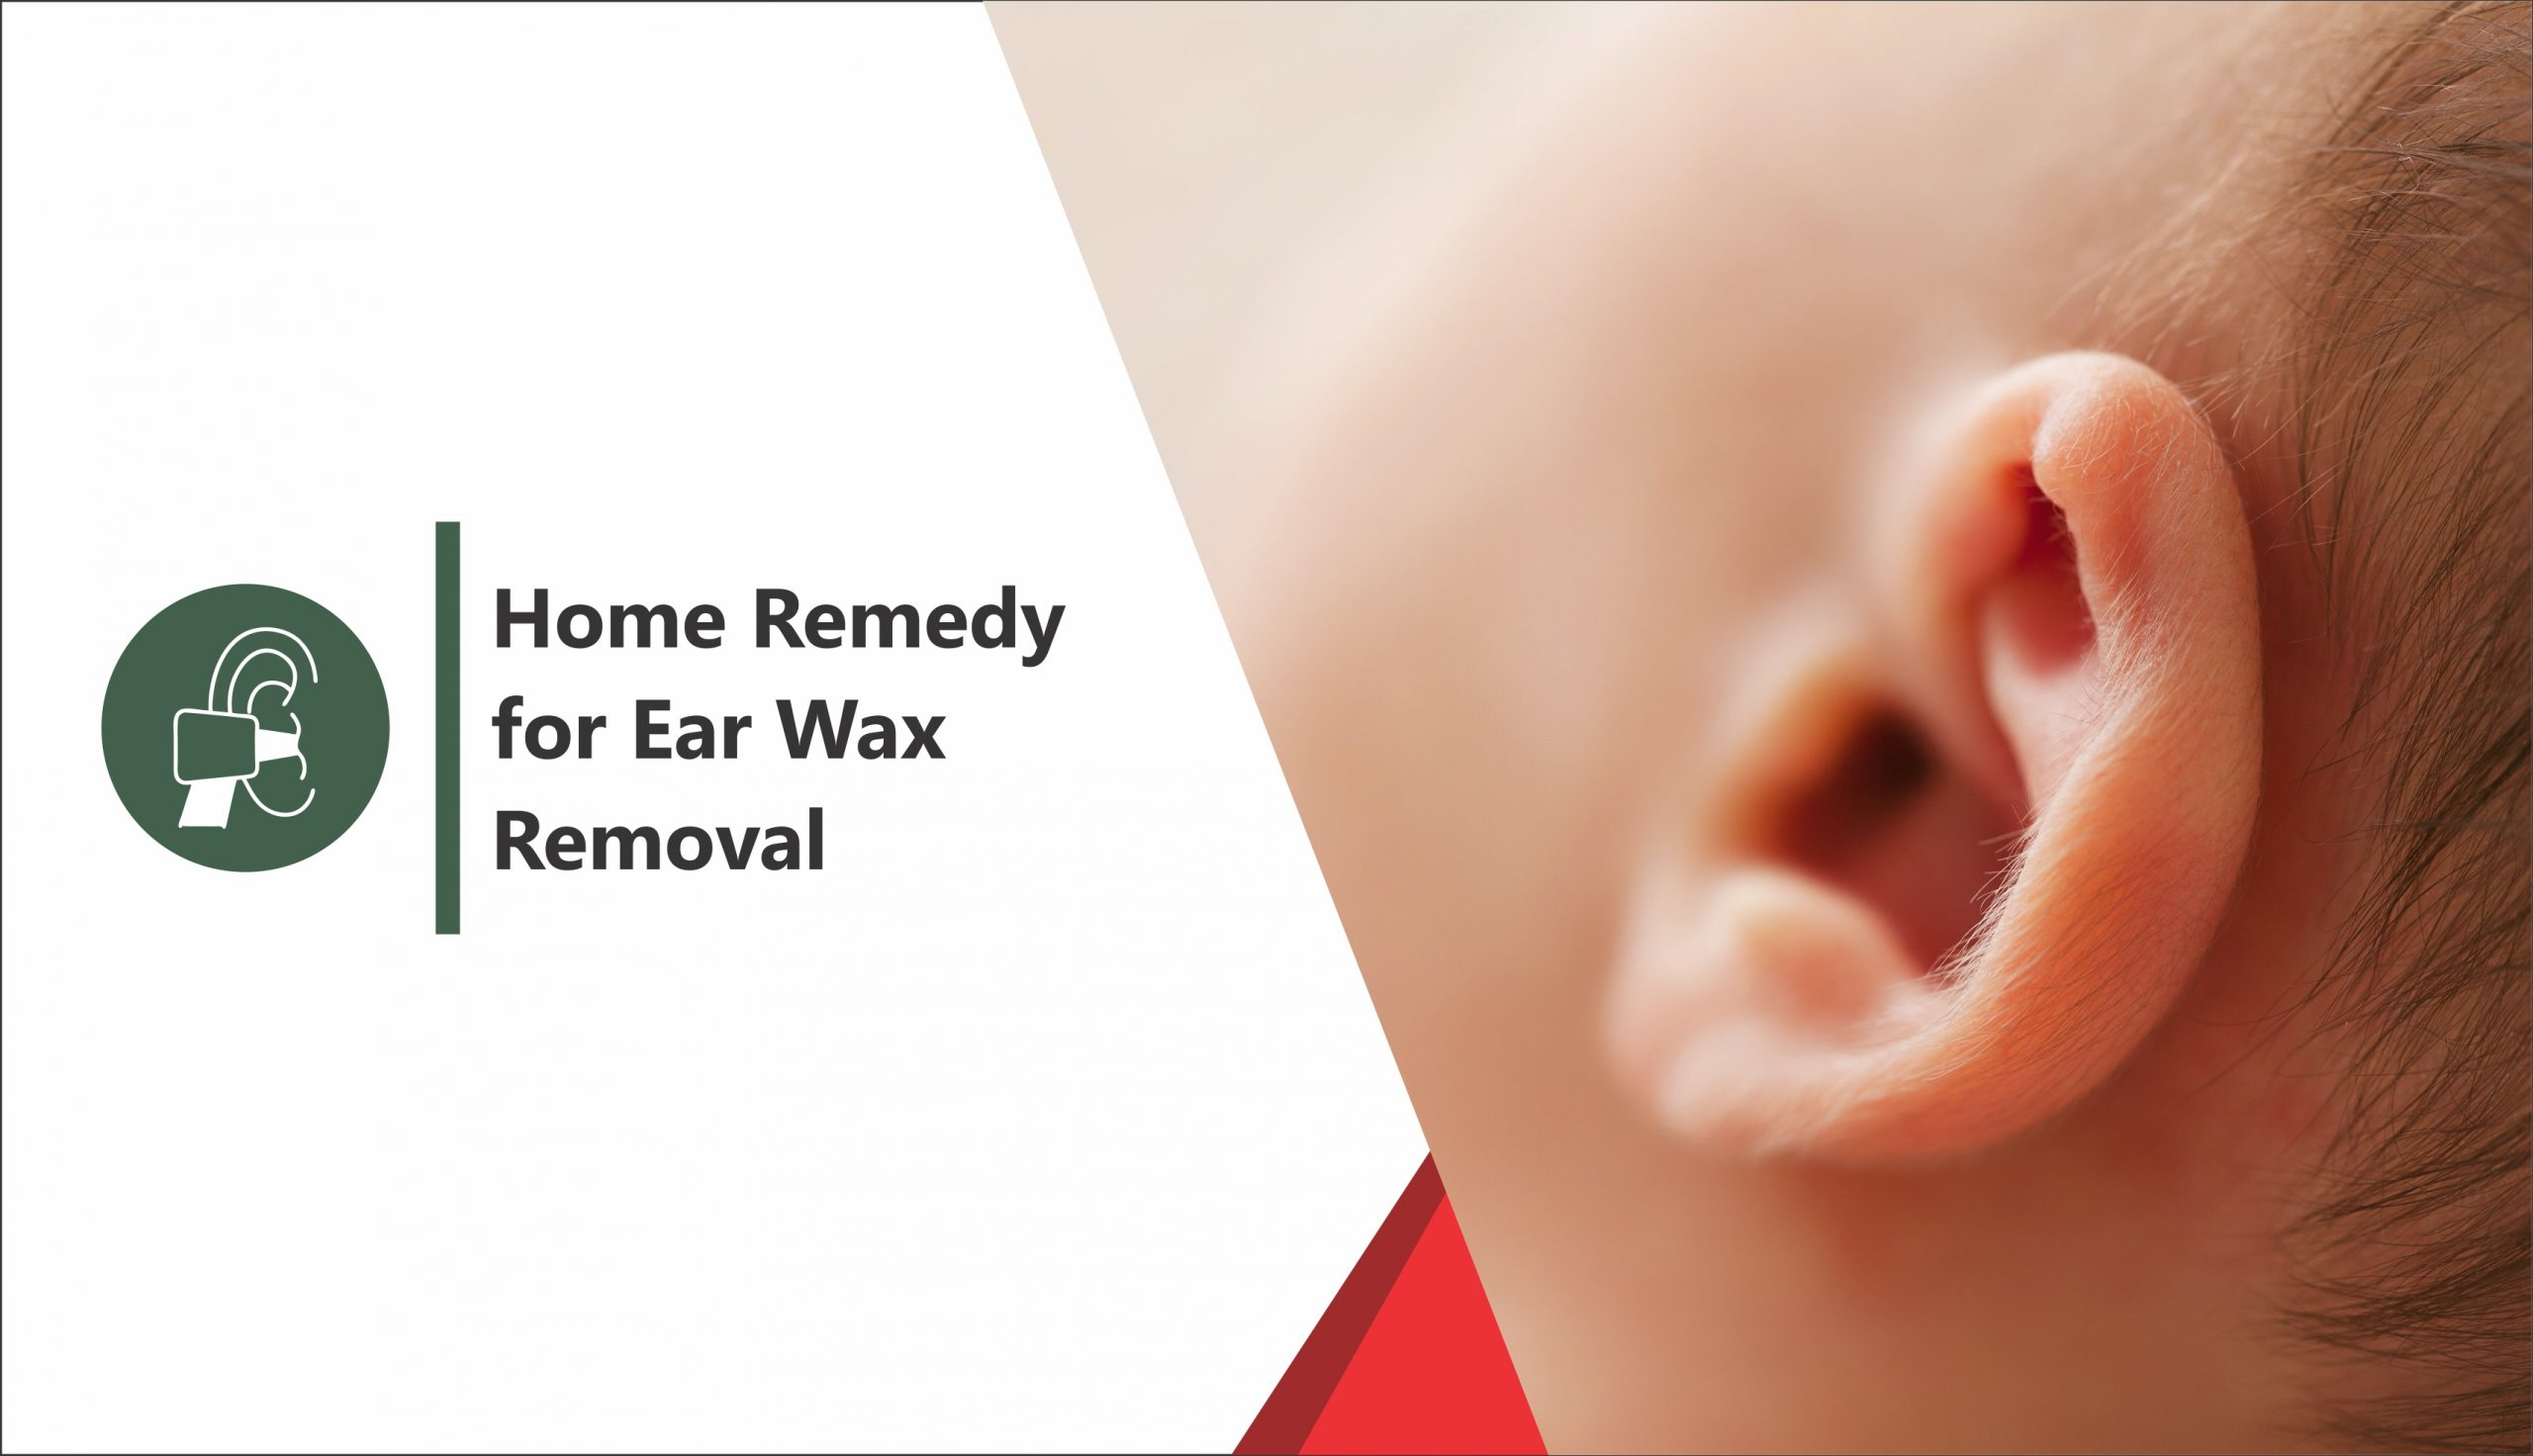 Home Remedy For Ear Wax Removal